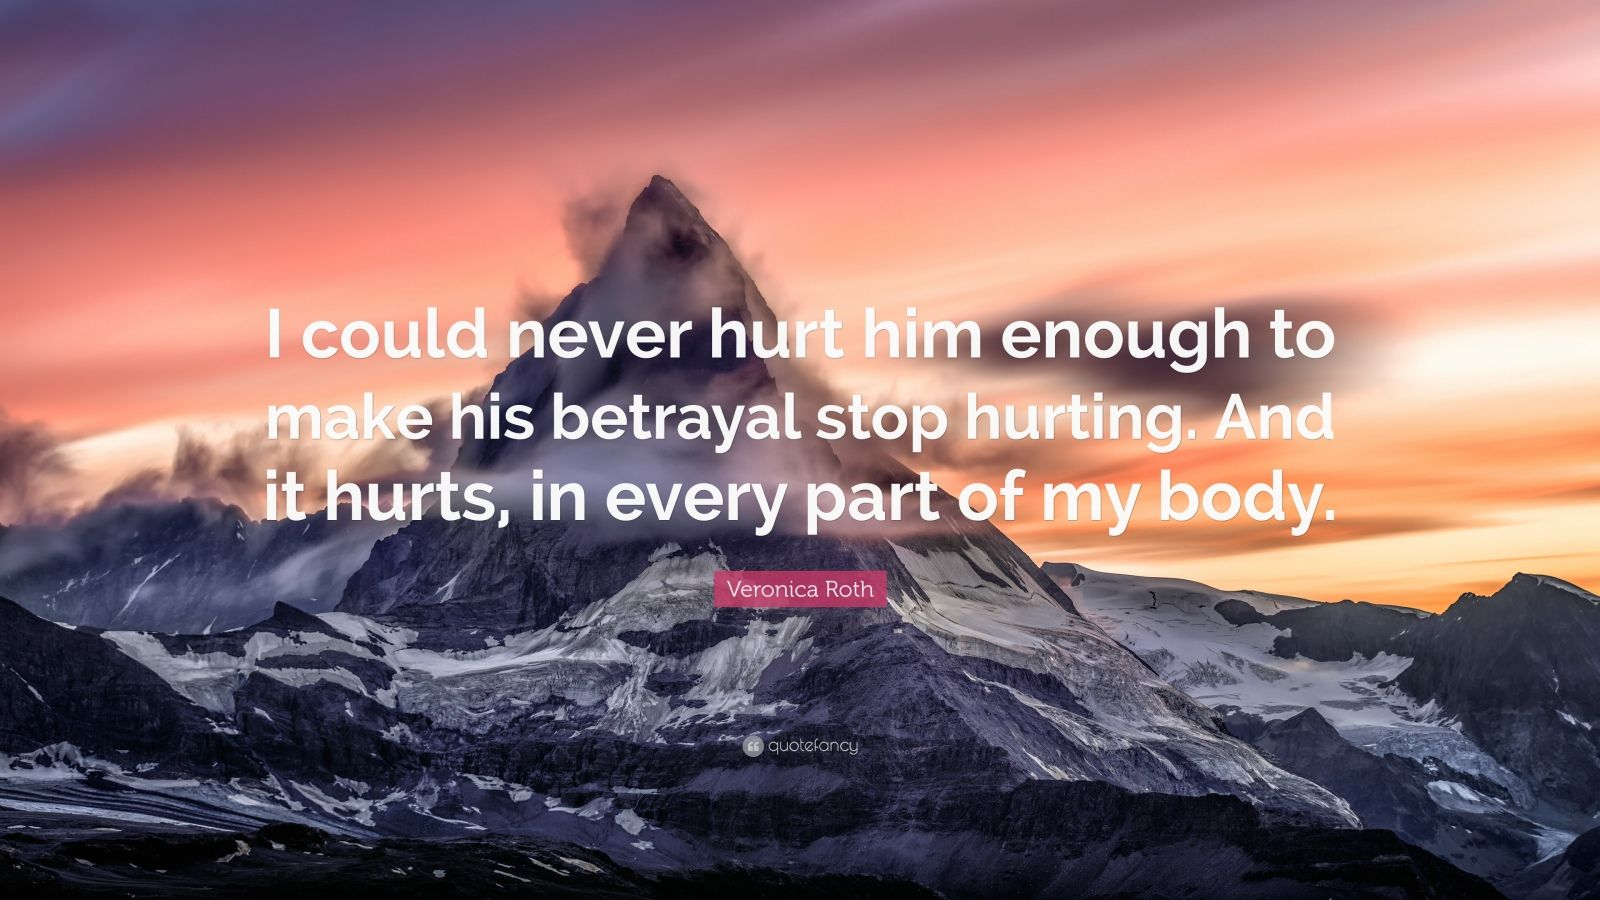 """Veronica Roth Quote: """"I could never hurt him enough to make his betrayal stop hurting. And it hurts, in every part of my body."""""""